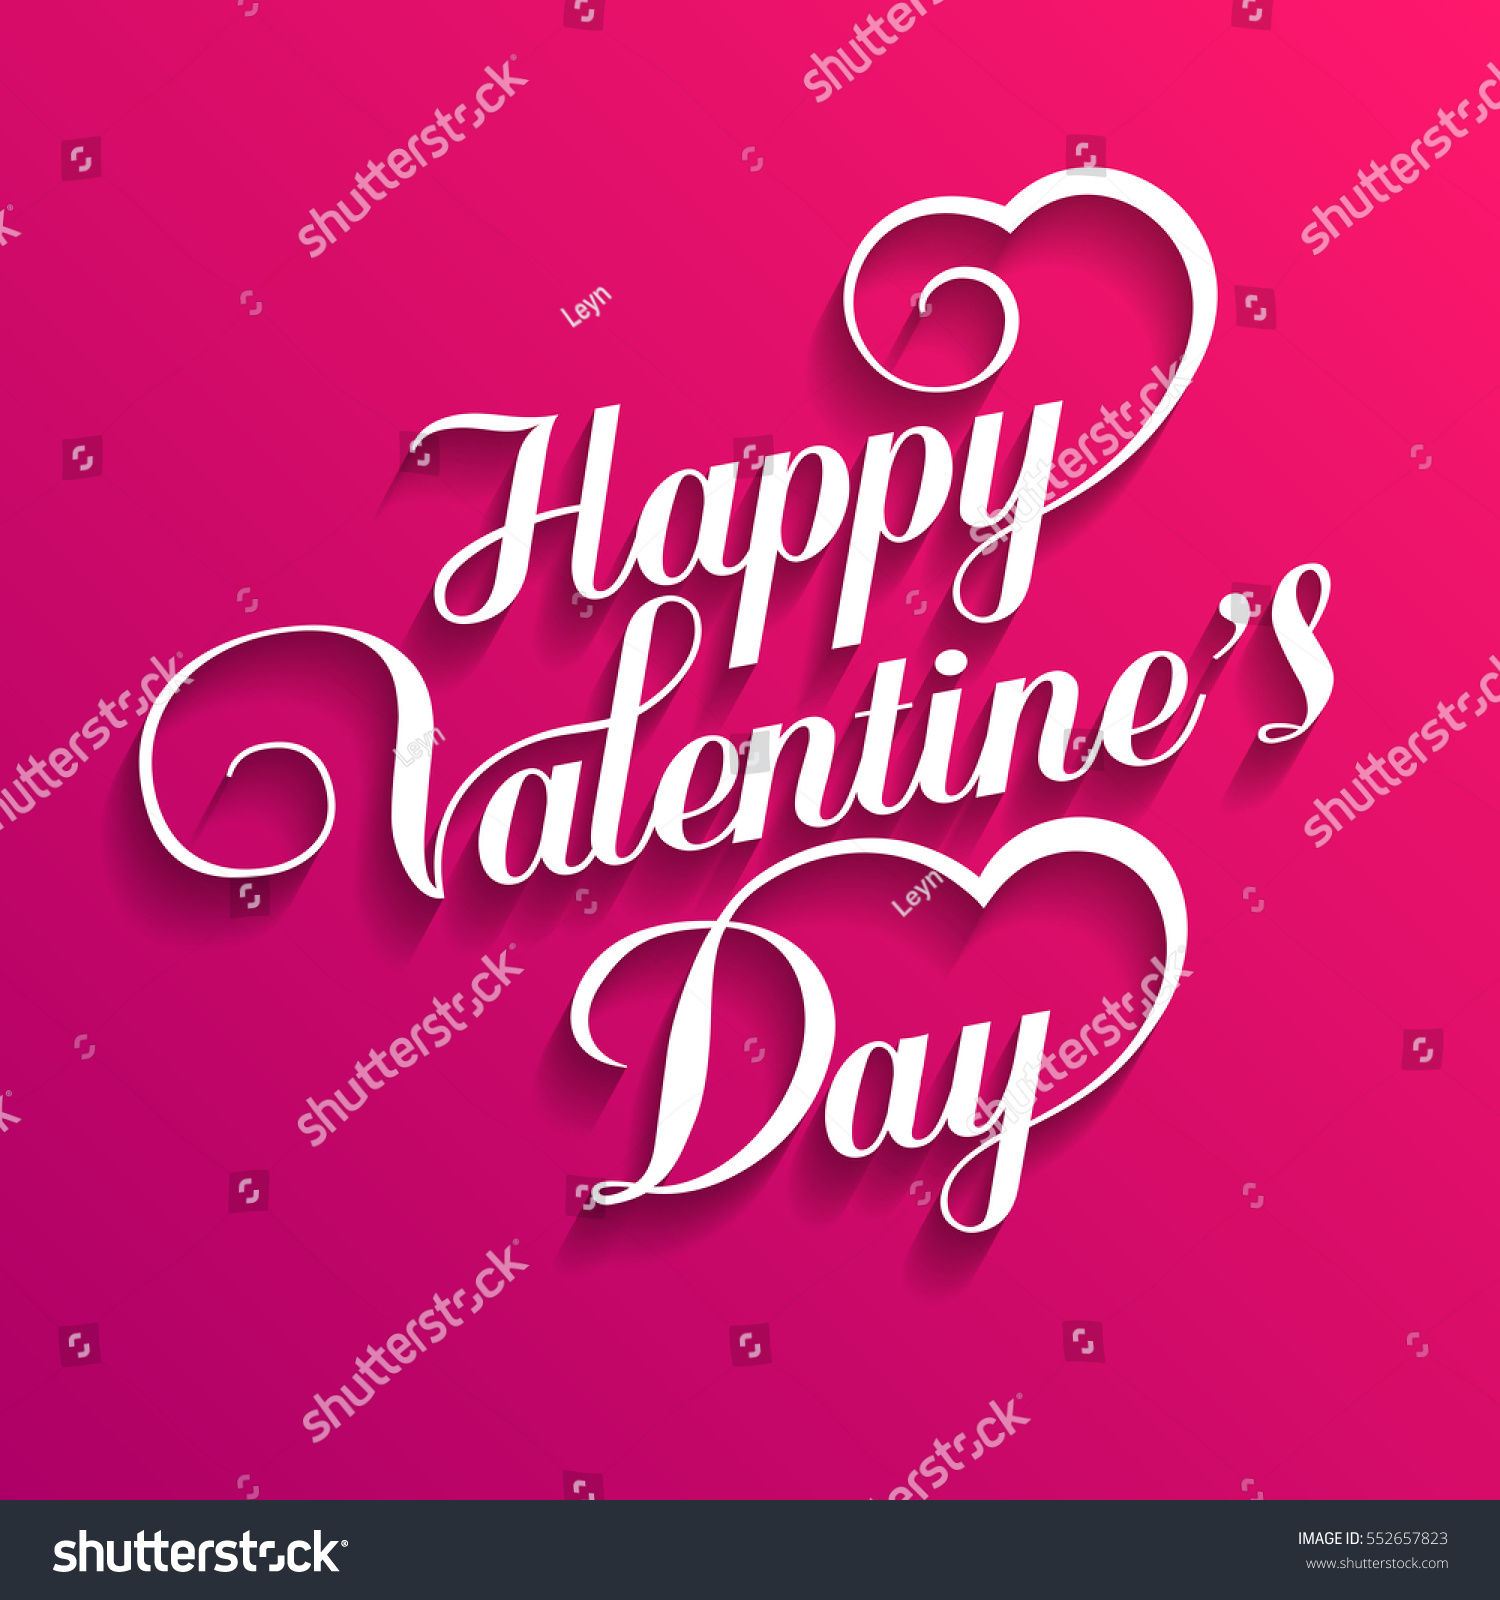 Happy Valentines Day Hand Drawing Vector Lettering design - vector illustration. #552657823